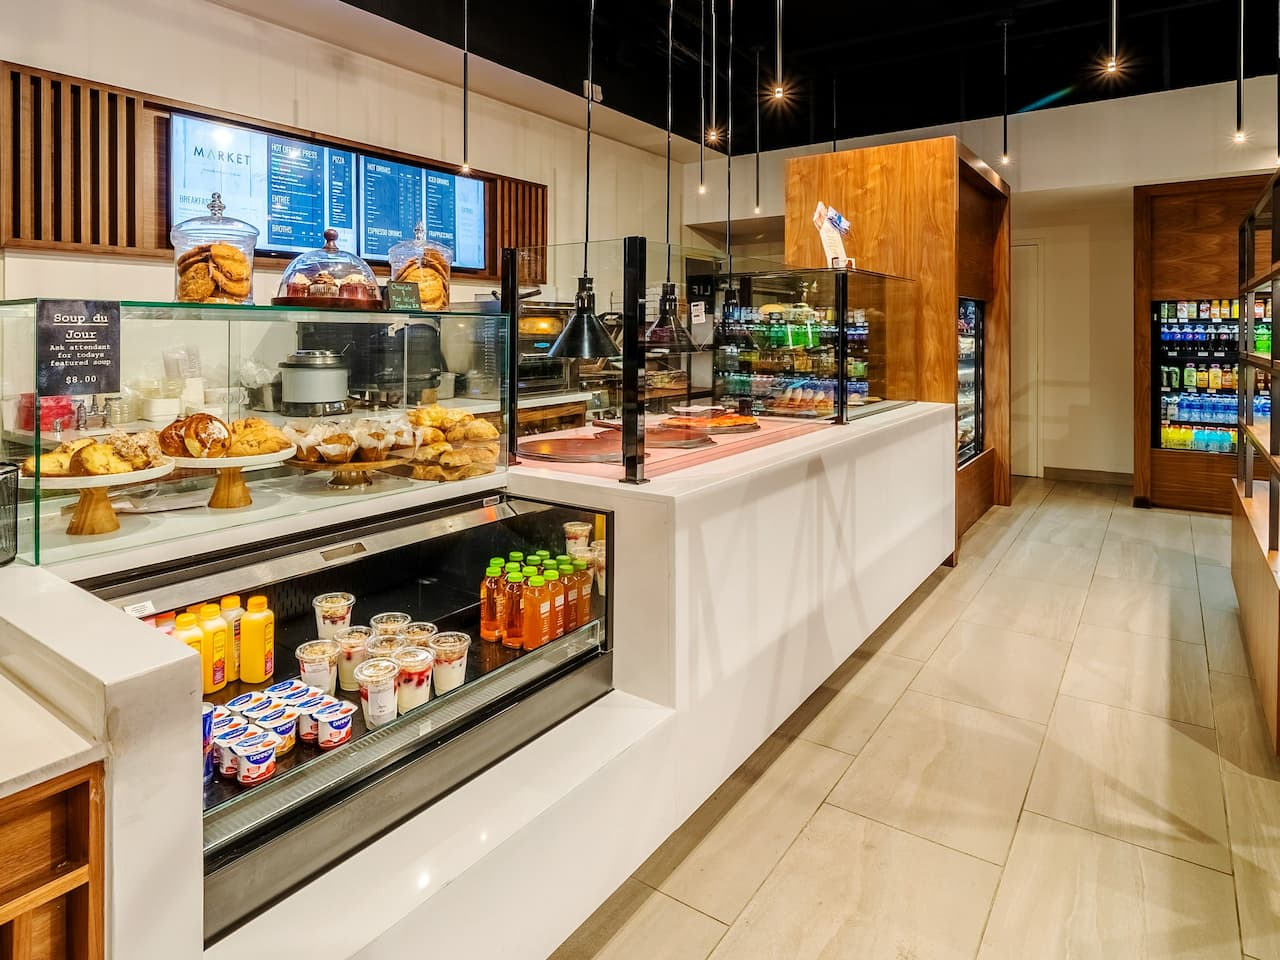 A close up of the checkout counter at the breakfast market at Hyatt Regency Miami